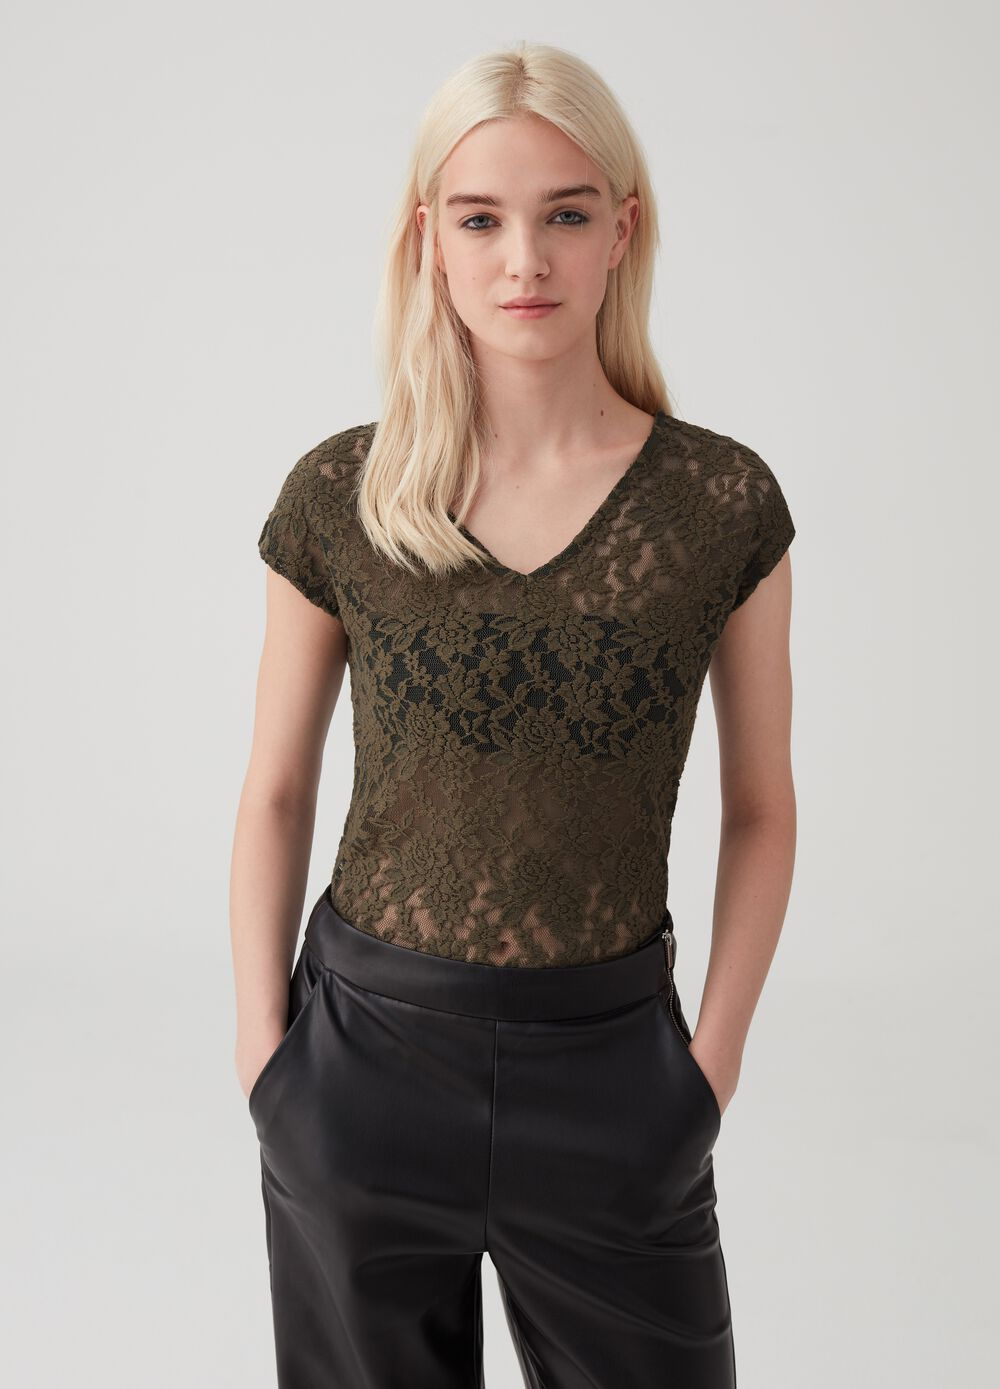 V-neck top in stretch lace